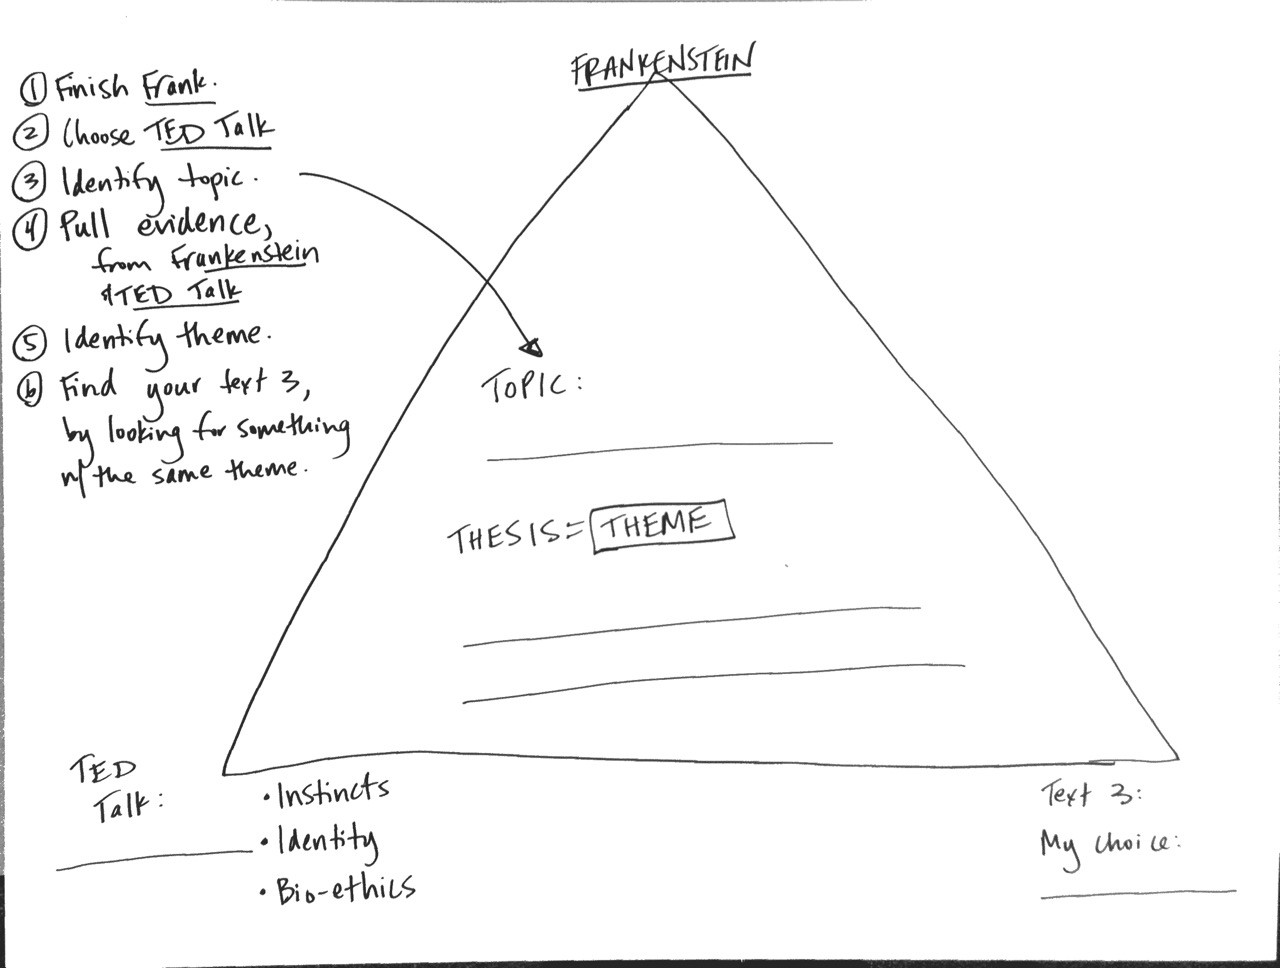 ms mcmaster s website homework  here s the photo of the triangle organizer that you re using to develop your essay and presentation remember the steps are listed in order down the